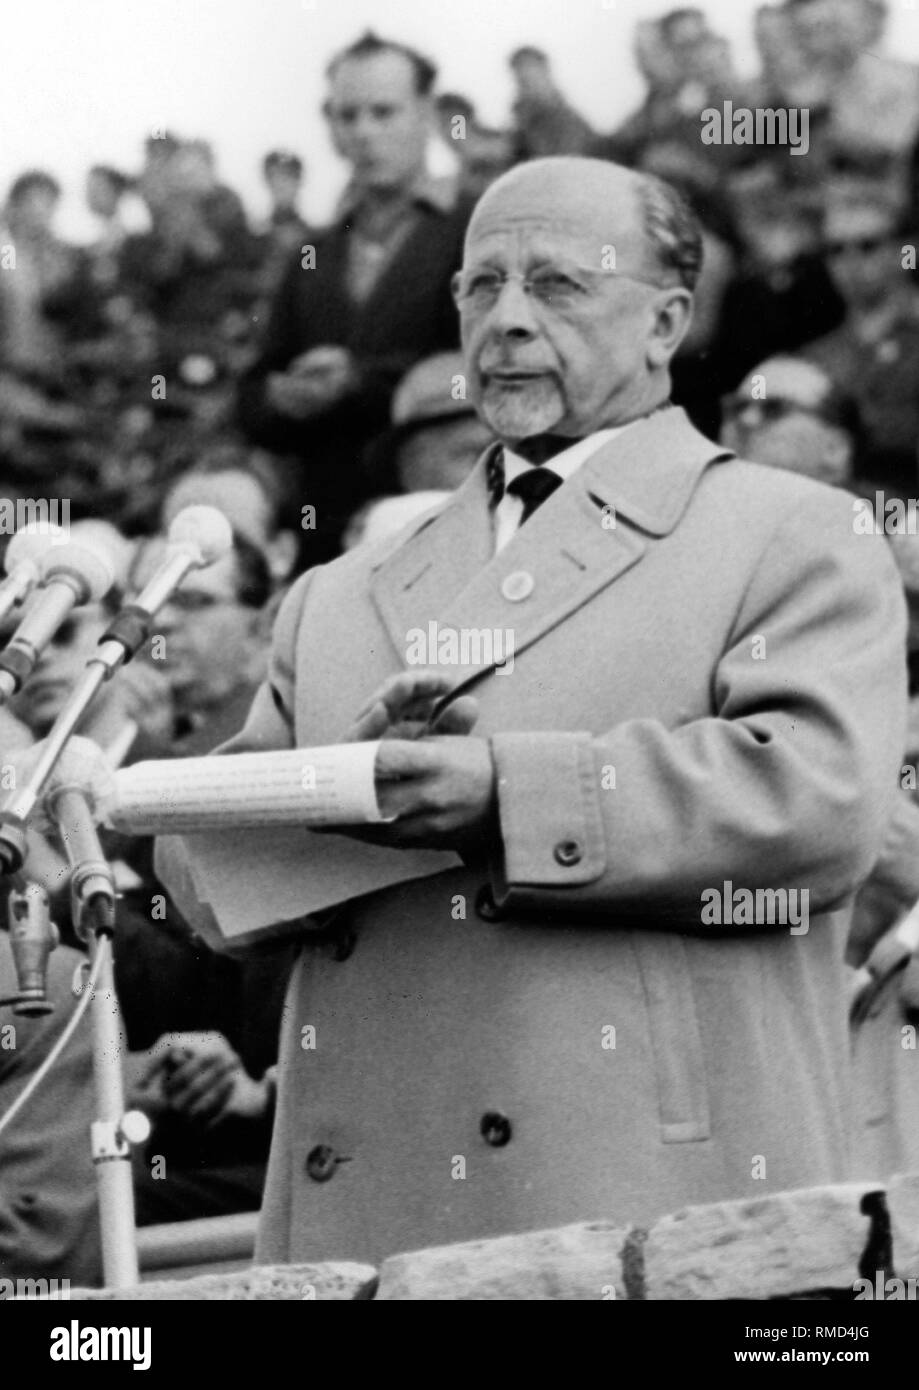 Walter Ulbricht, party and head of state of the GDR in a speech at the opening of the Pentecost meeting of the FDJ in the 'Walter Ulbricht Stadium', May 1964 in East Berlin. - Stock Image